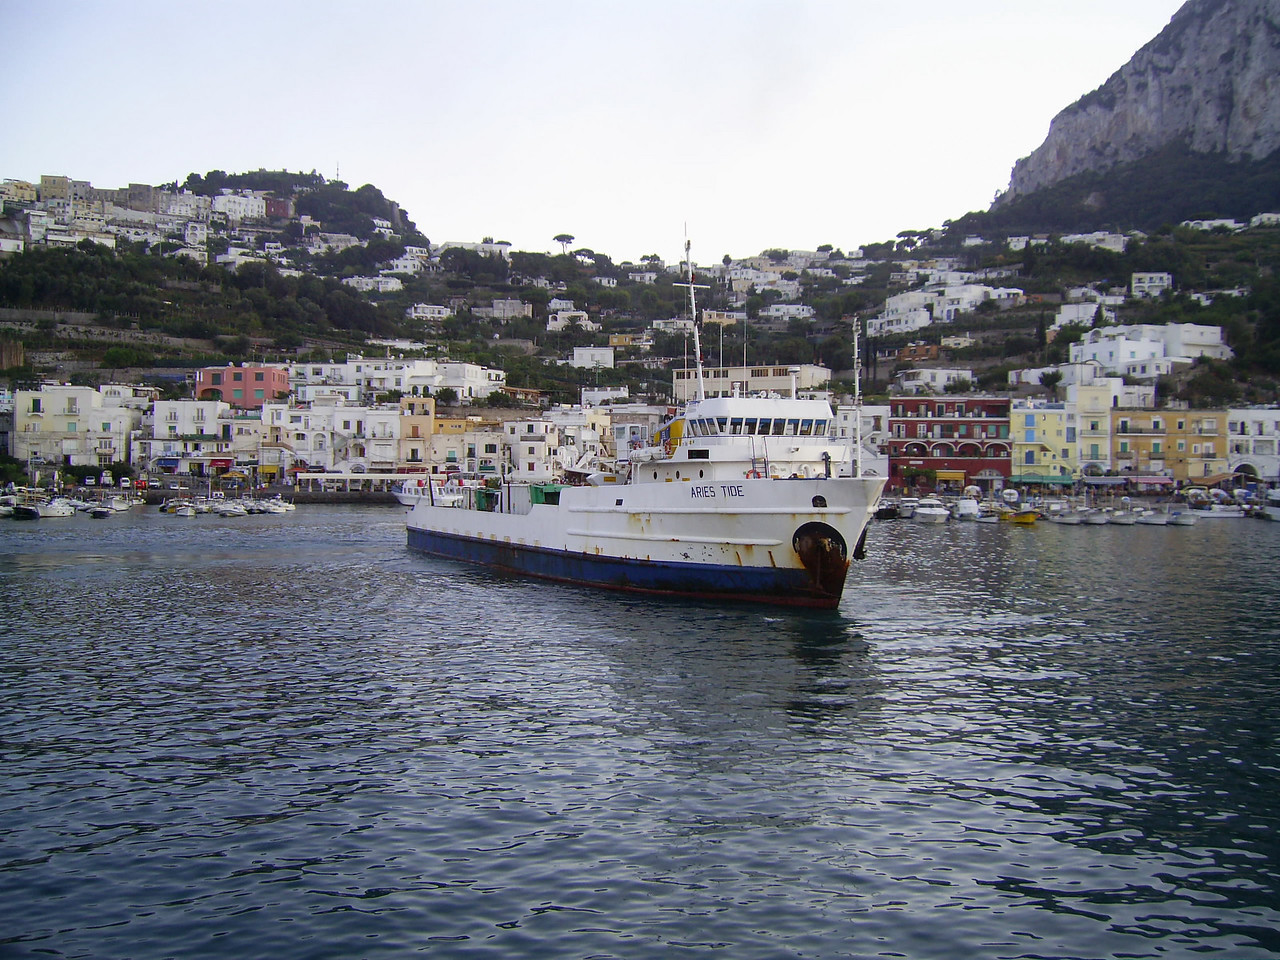 M/S ARIES TIDE maneuvering in Capri.